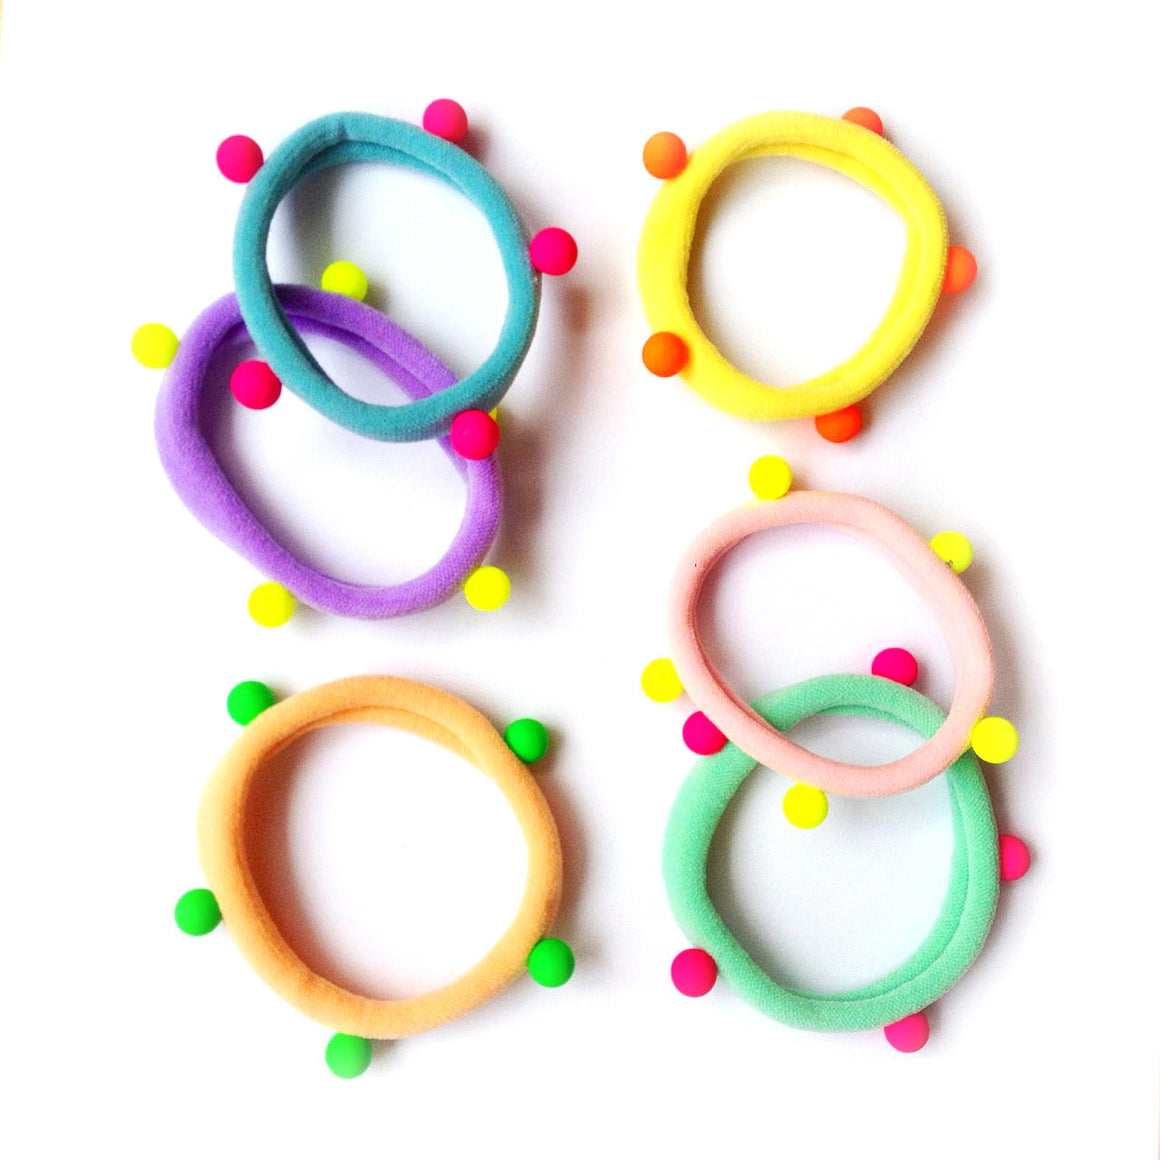 pastel/neon studded ponytail holders // hello shiso hair accessories for girls